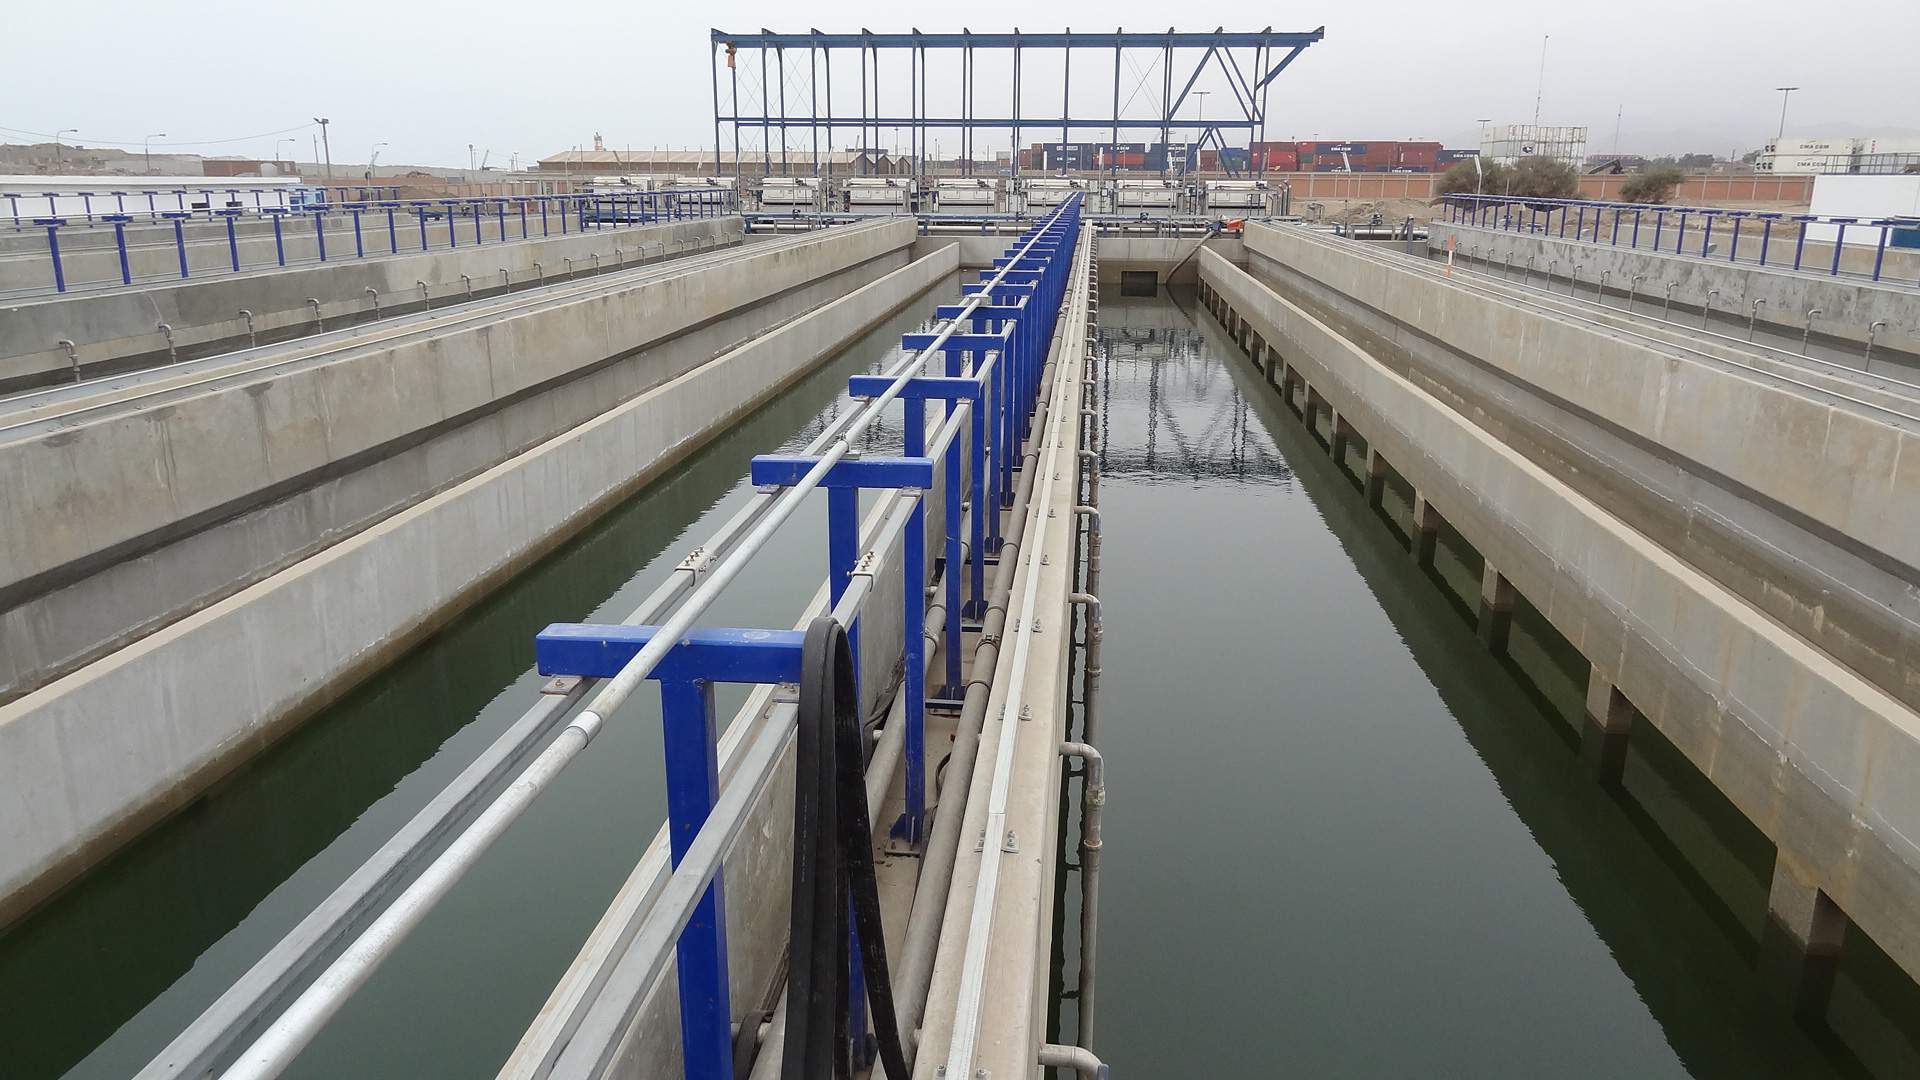 The Callao Wastewater Treatment Plant just west of Lima, Peru